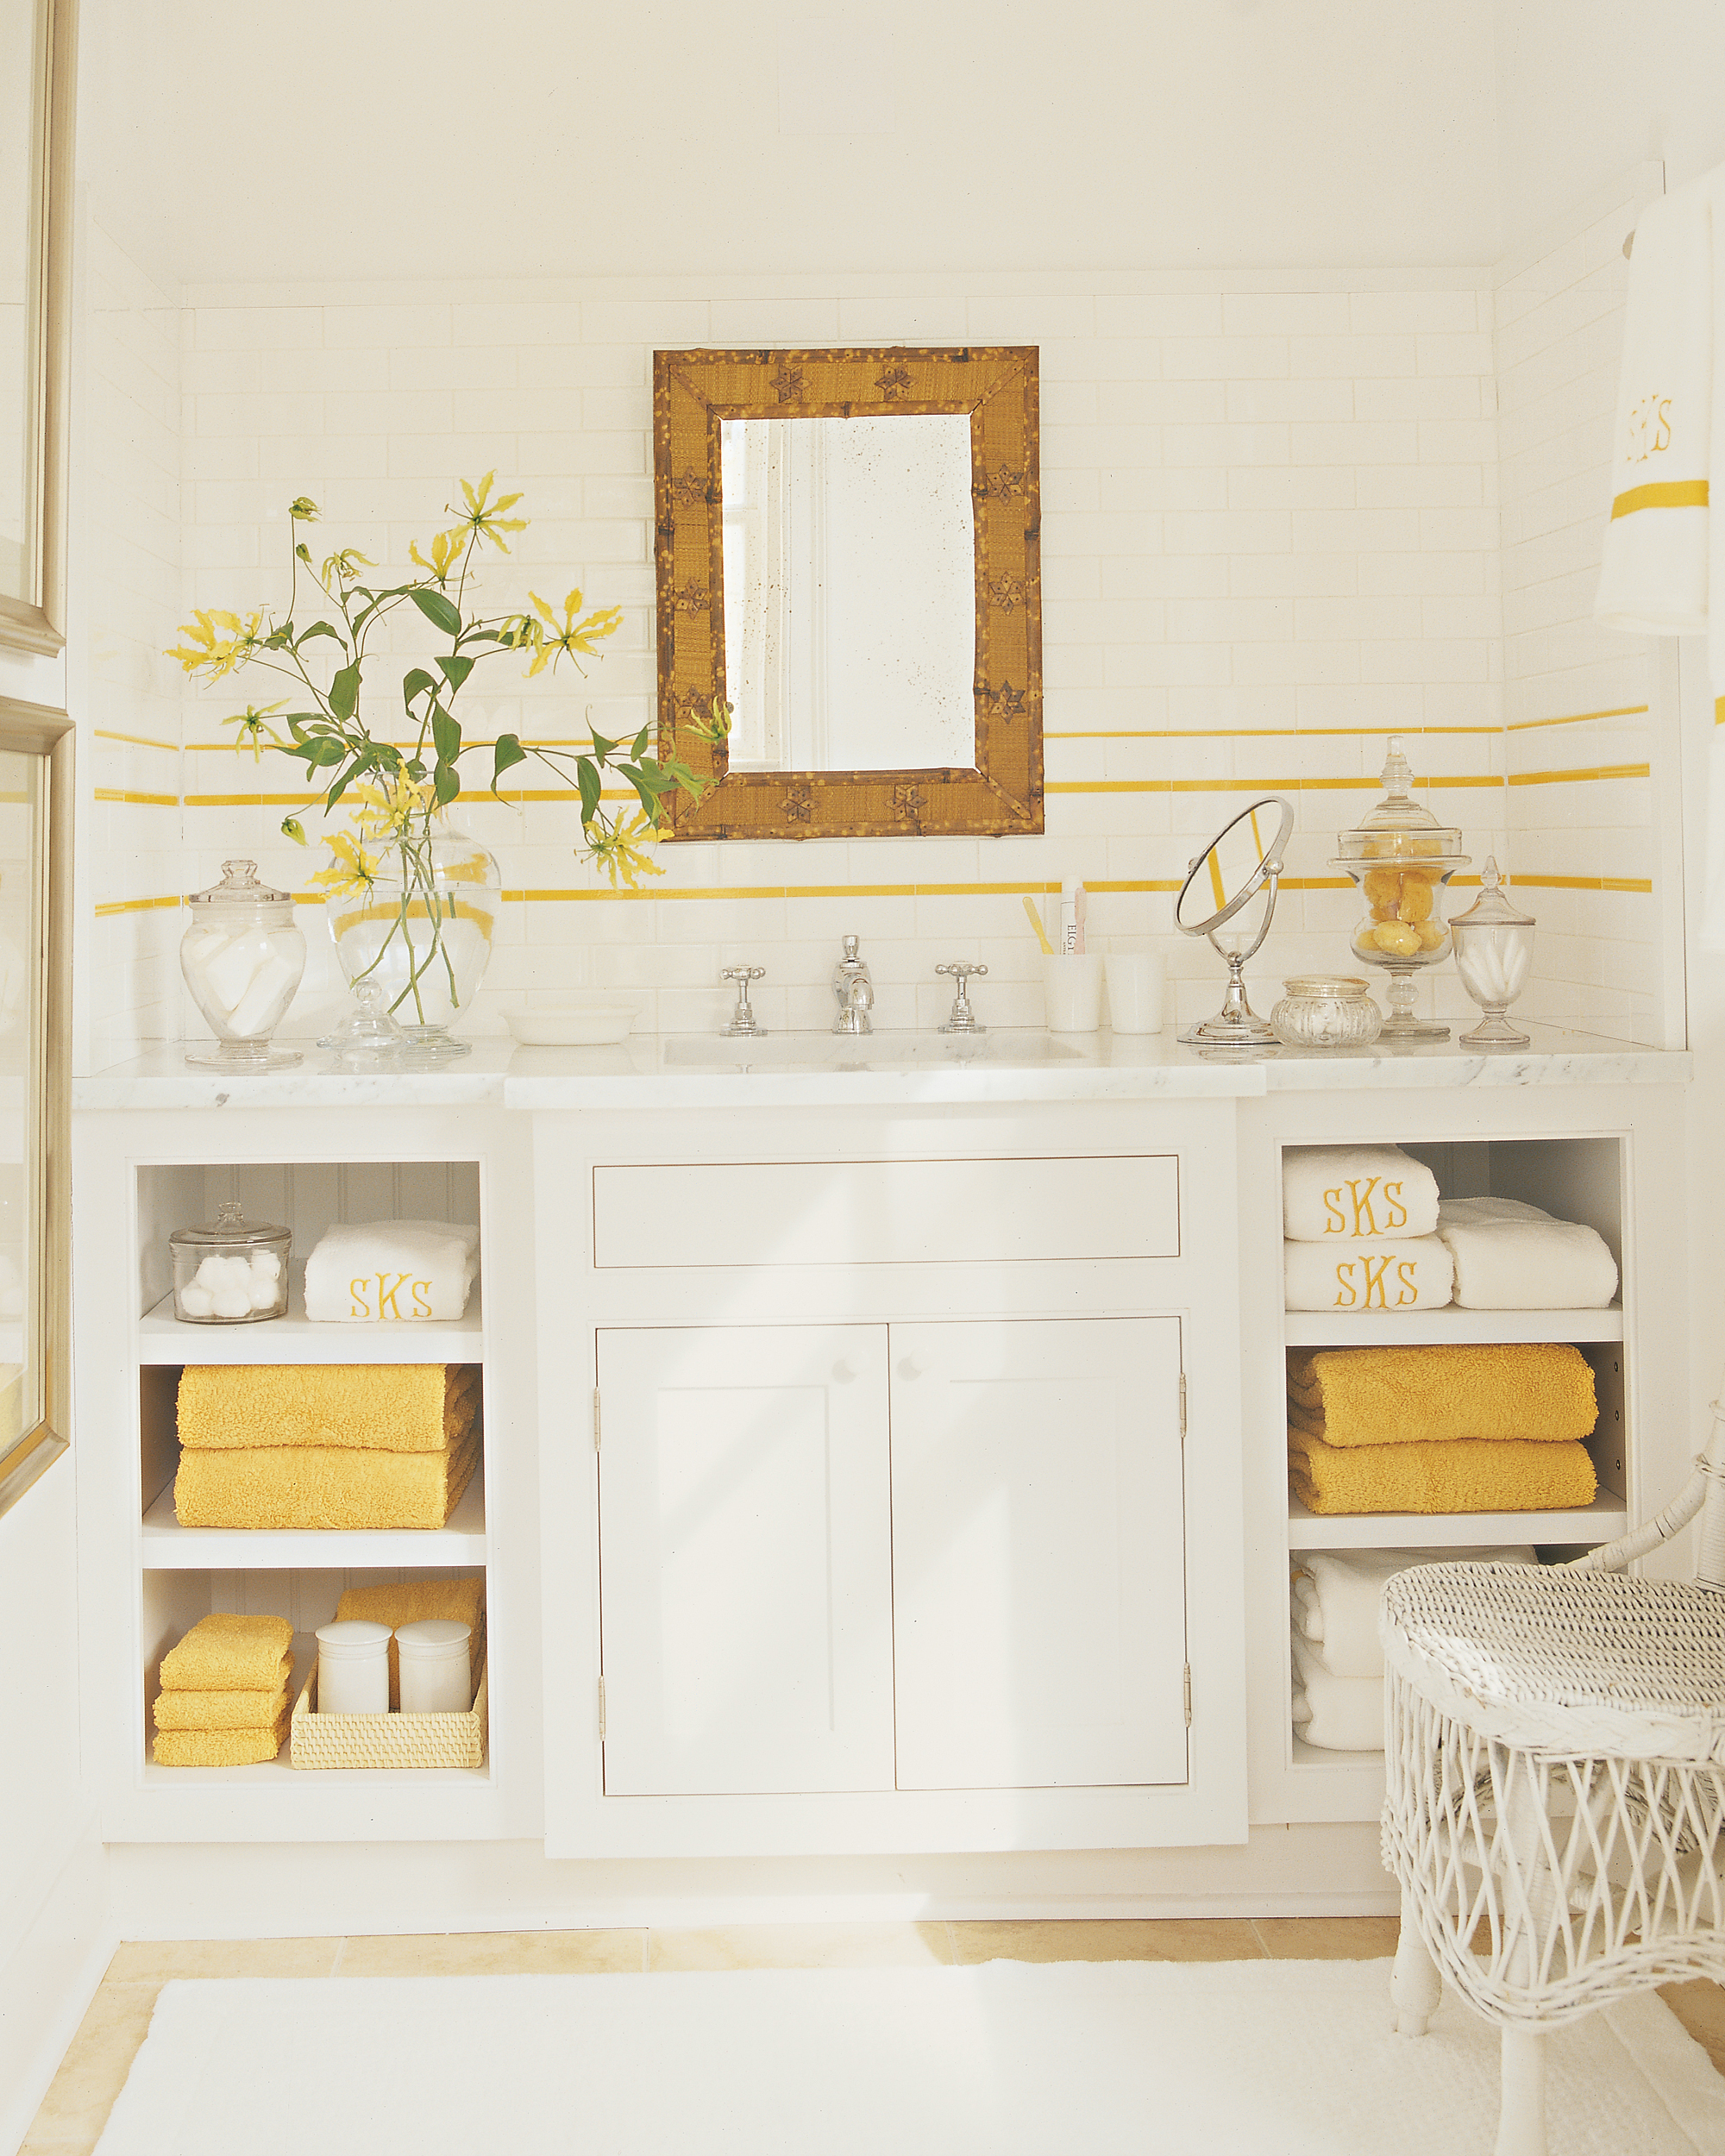 The Bathroom: Keep Linens in a Separate Storage Area